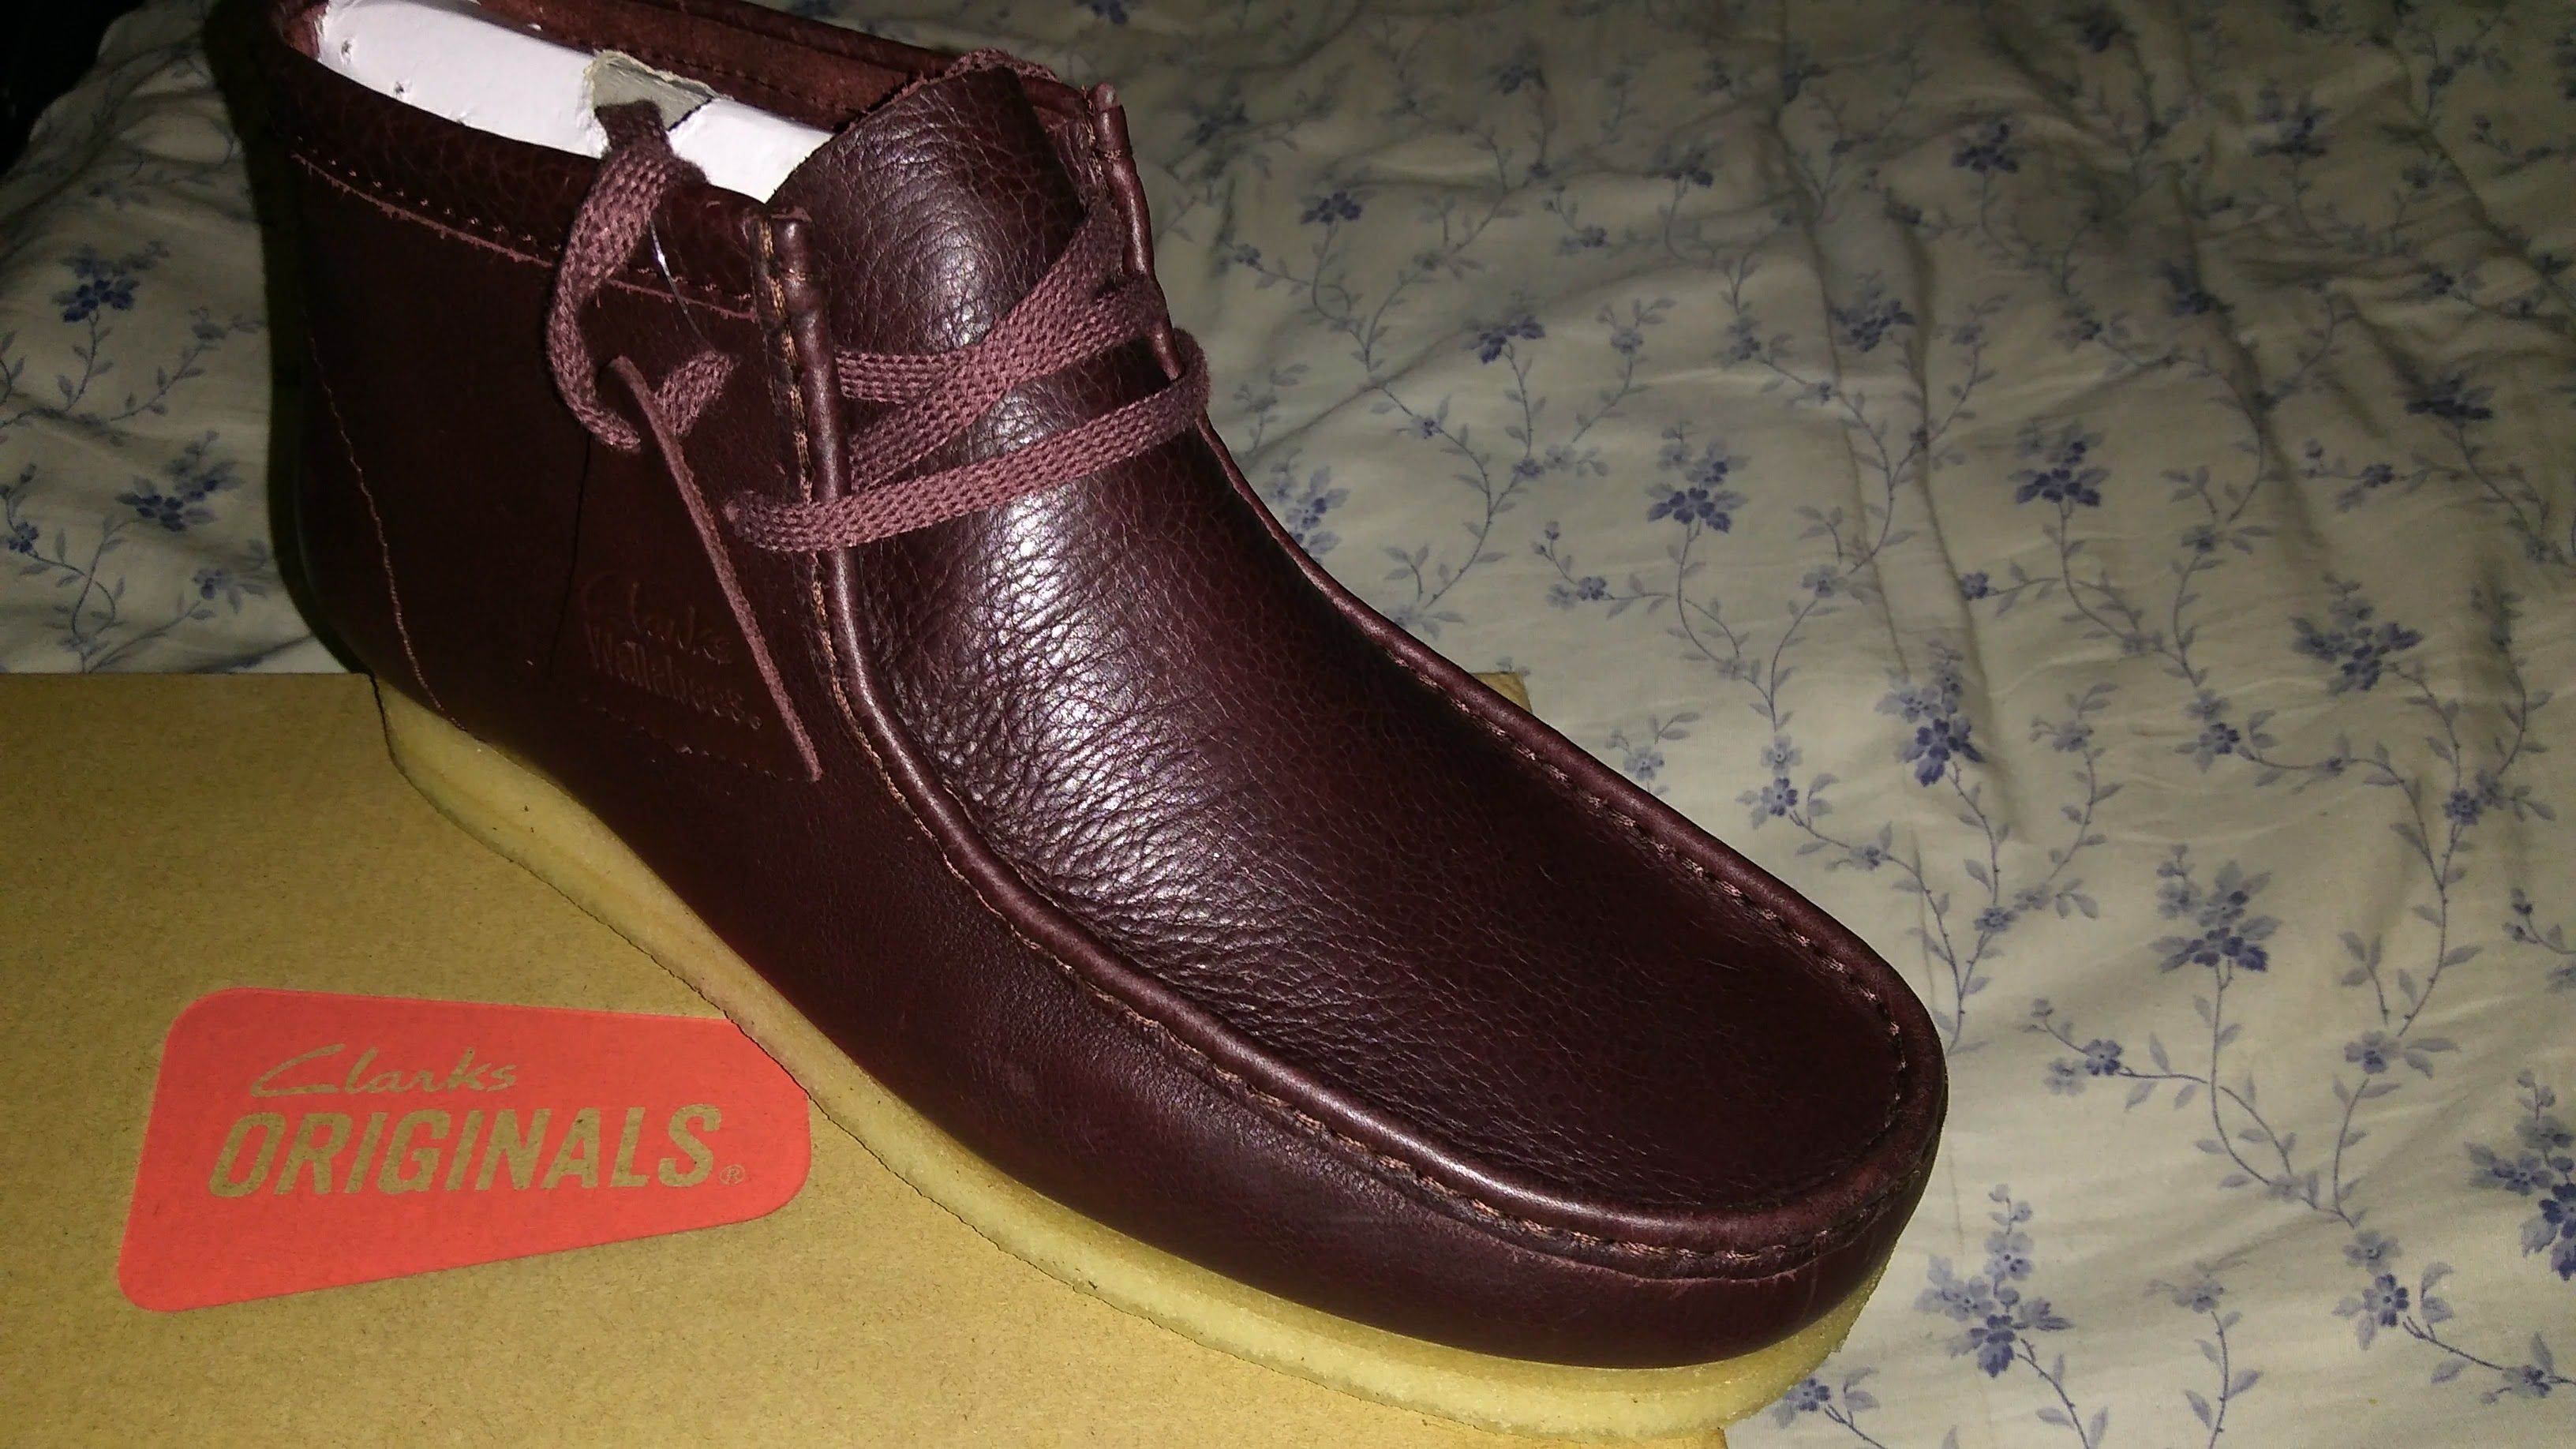 #ClarksUSA #review of the new #Burgundy #TumbledLeather #Moccasin #shoe by #Clarks - https://drewrynewsnetwork.com/forum/shoe-reviews/clarks-aa